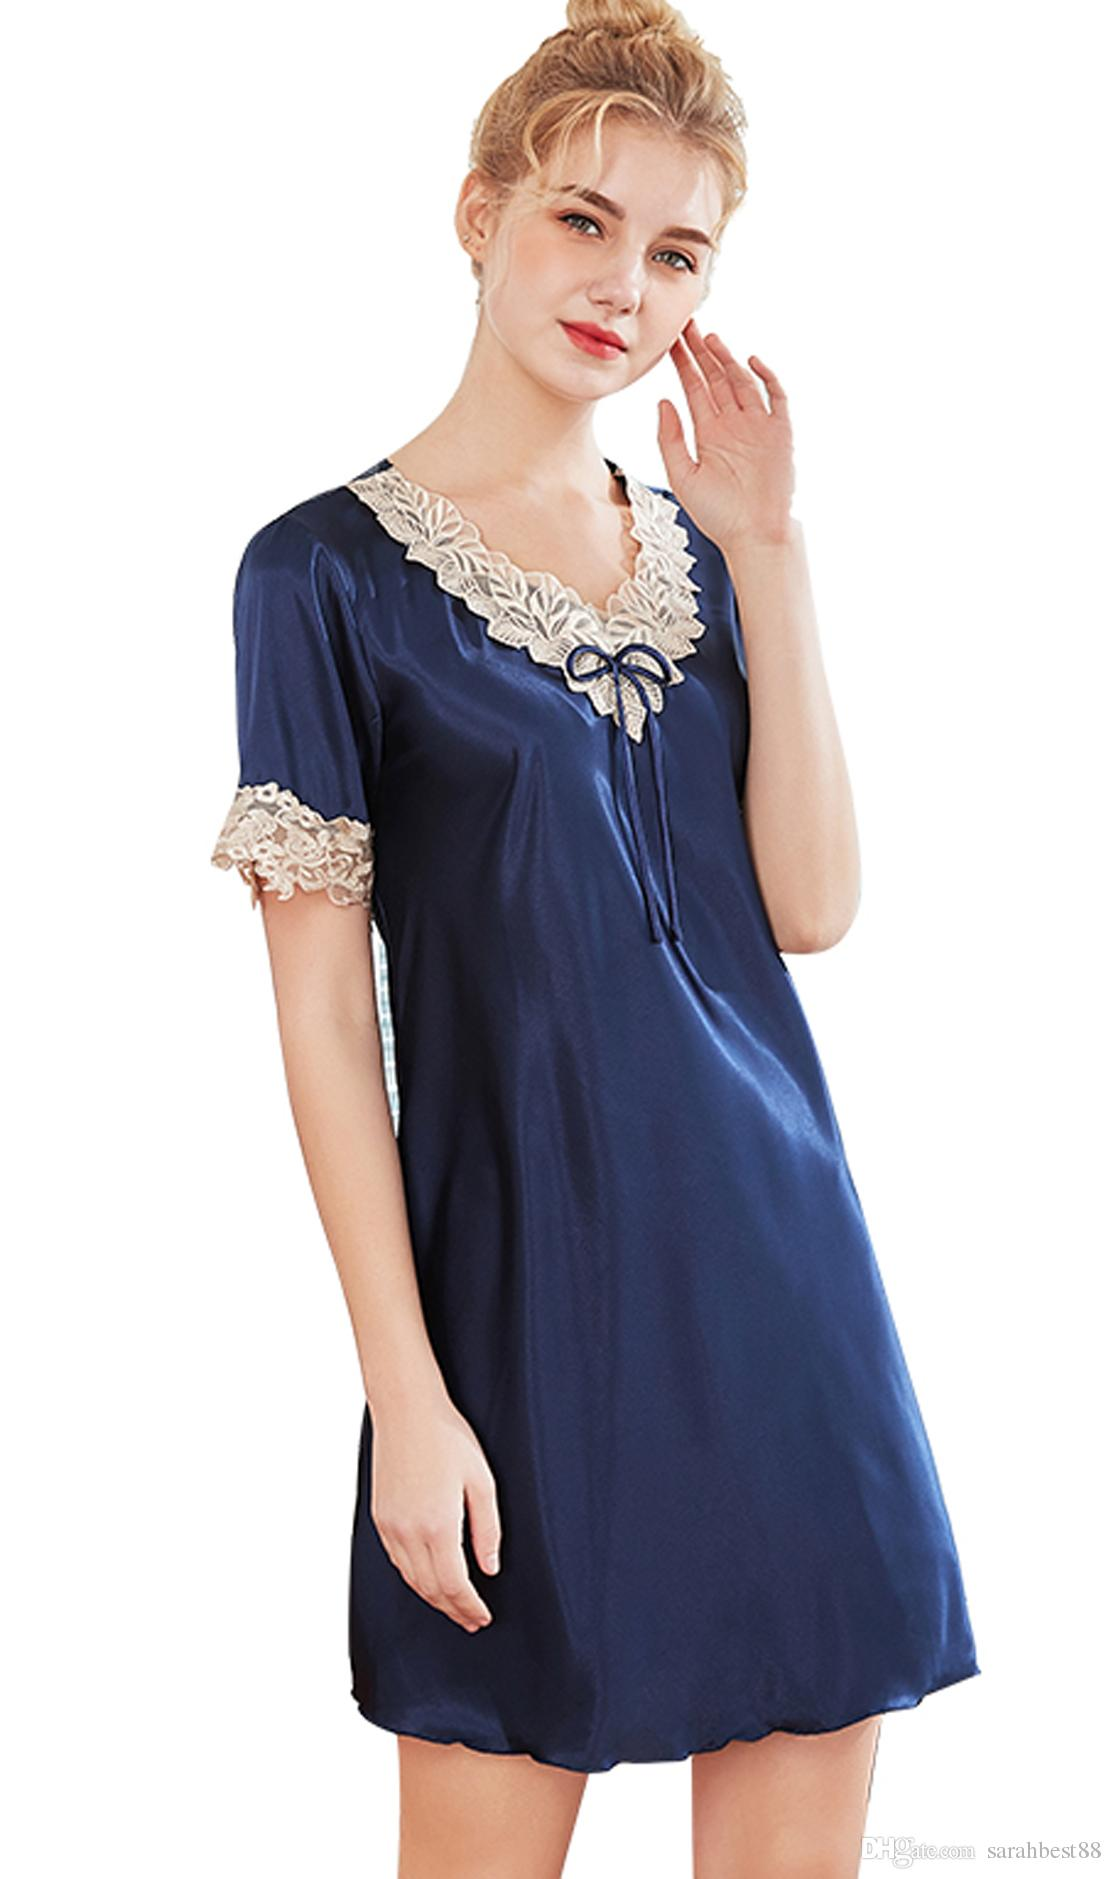 40f0011f54d5 2019 Women Girl Short Nightdress Summer V Neck Short Sleeves Silk Satin  Pajamas Sexy Ladies Tunic Nightwear Sleepshirts From Sarahbest88